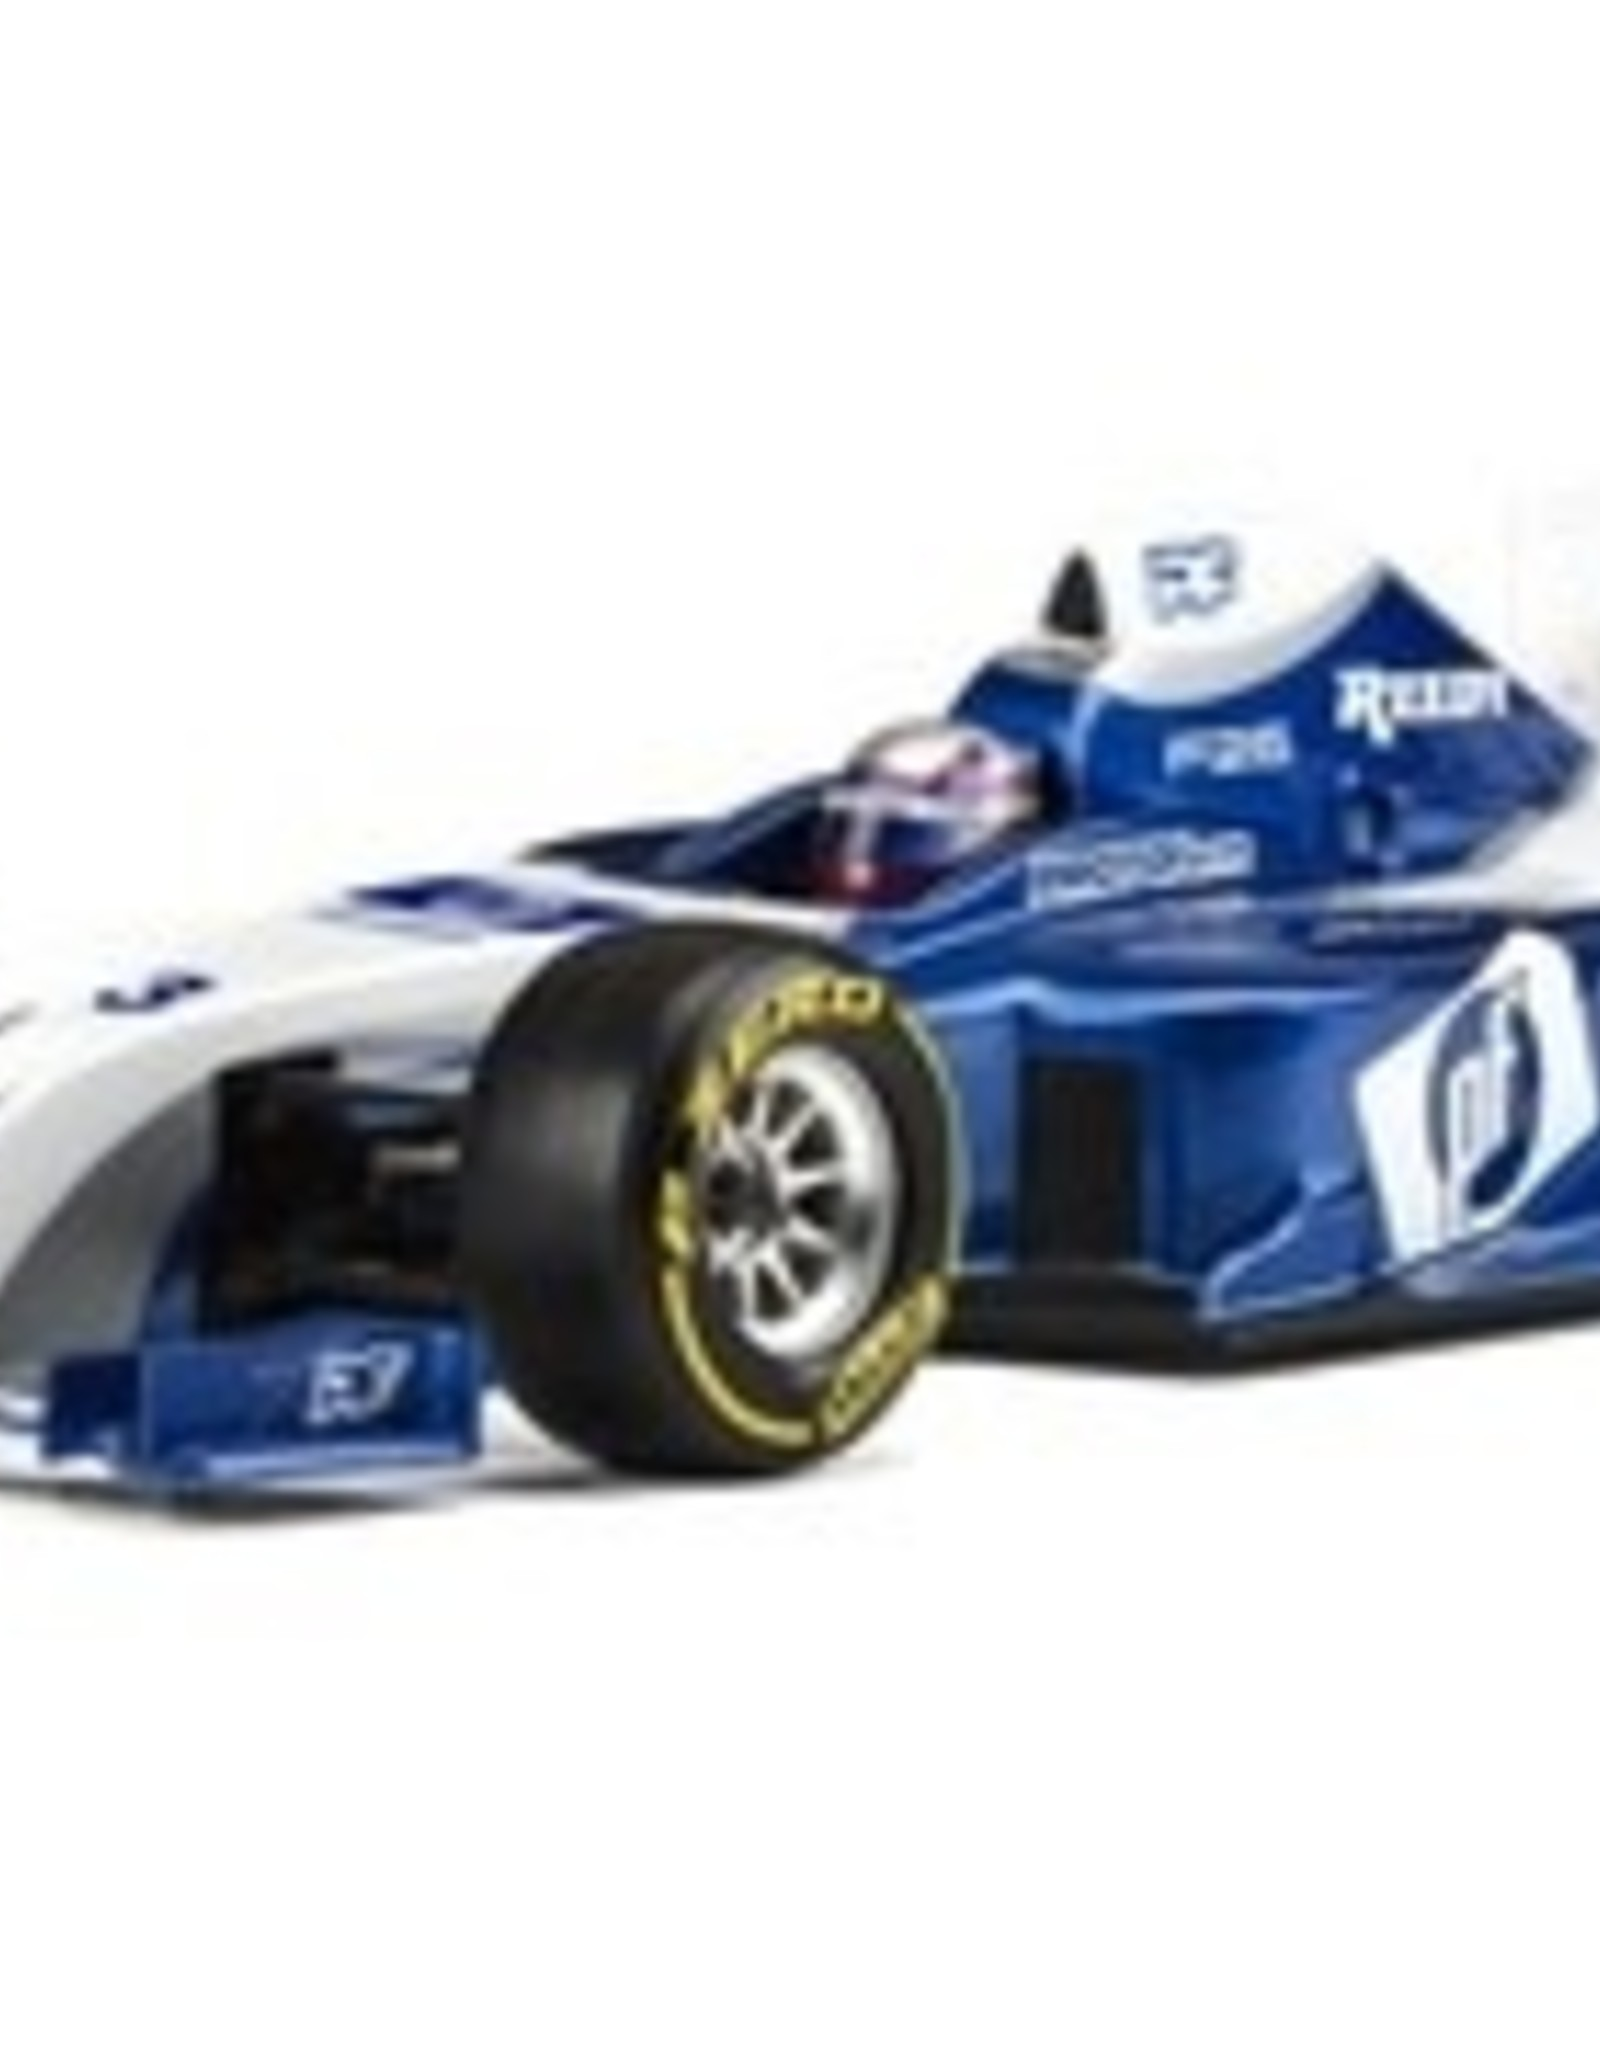 Protoform PRO156122  F26 Clear Body, for 1/10 Formula 1